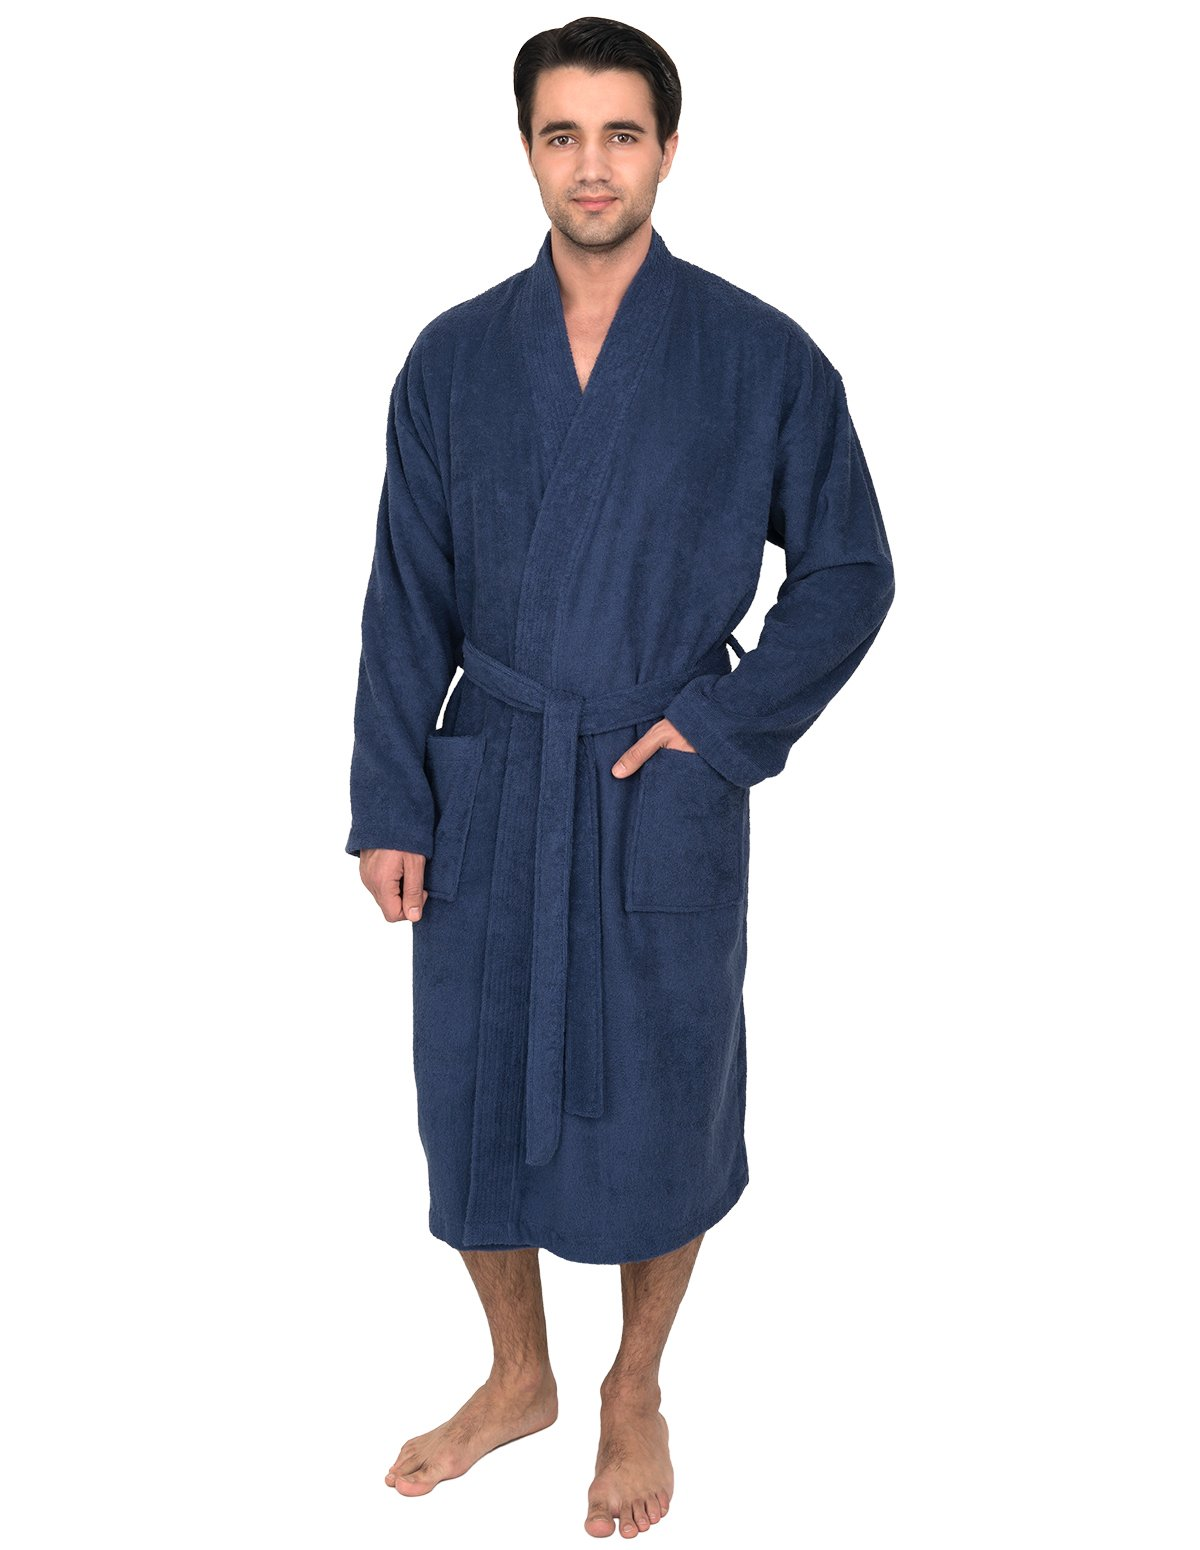 TowelSelections Men's Robe, Turkish Cotton Terry Kimono Bathrobe Large/X-Large Twilight Blue by TowelSelections